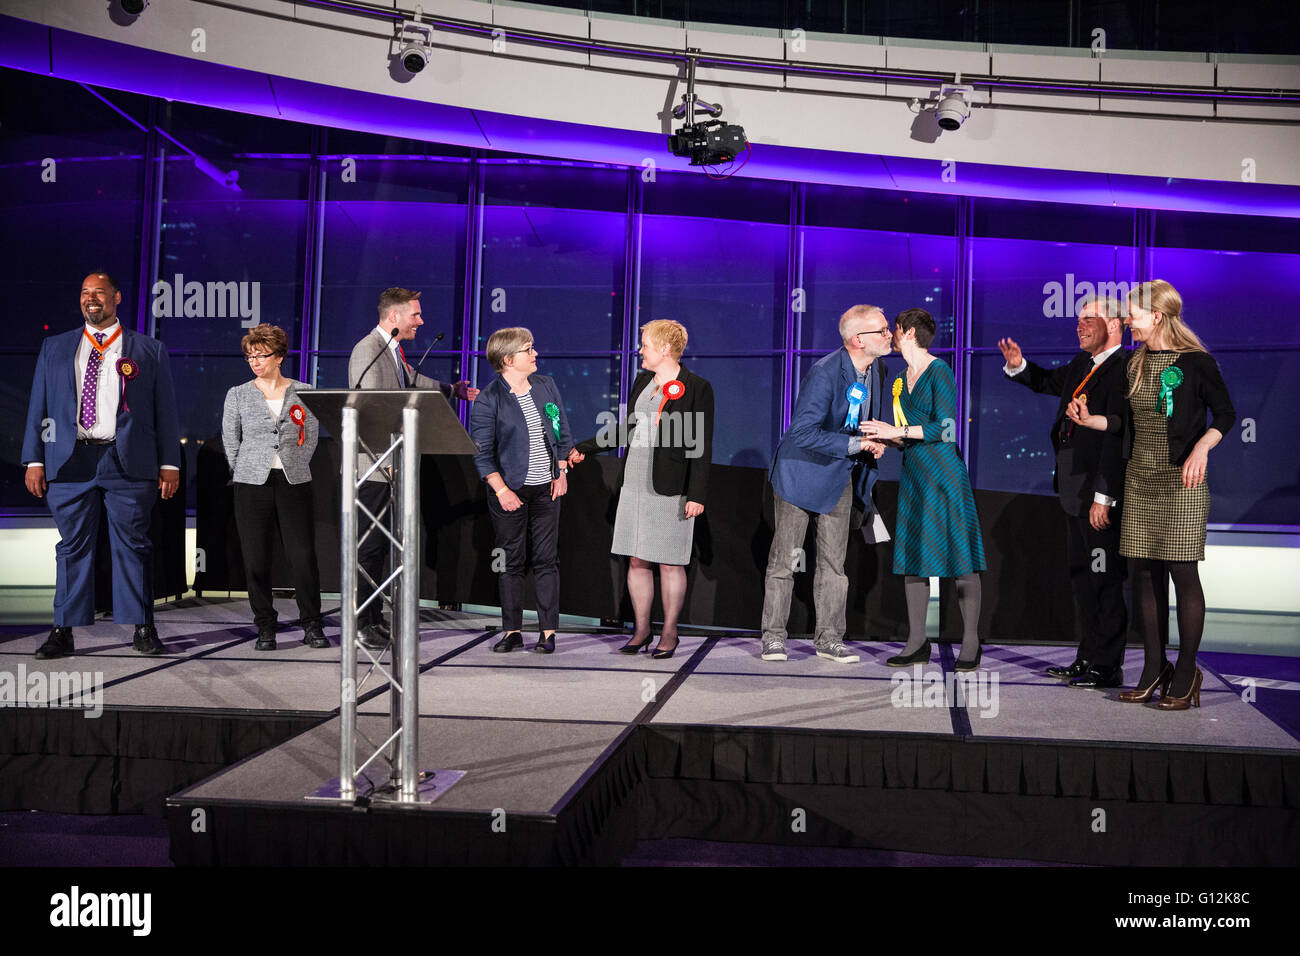 London, UK. 7th May, 2016. Successful London Assembly candidates congratulate each other at City Hall. - Stock Image